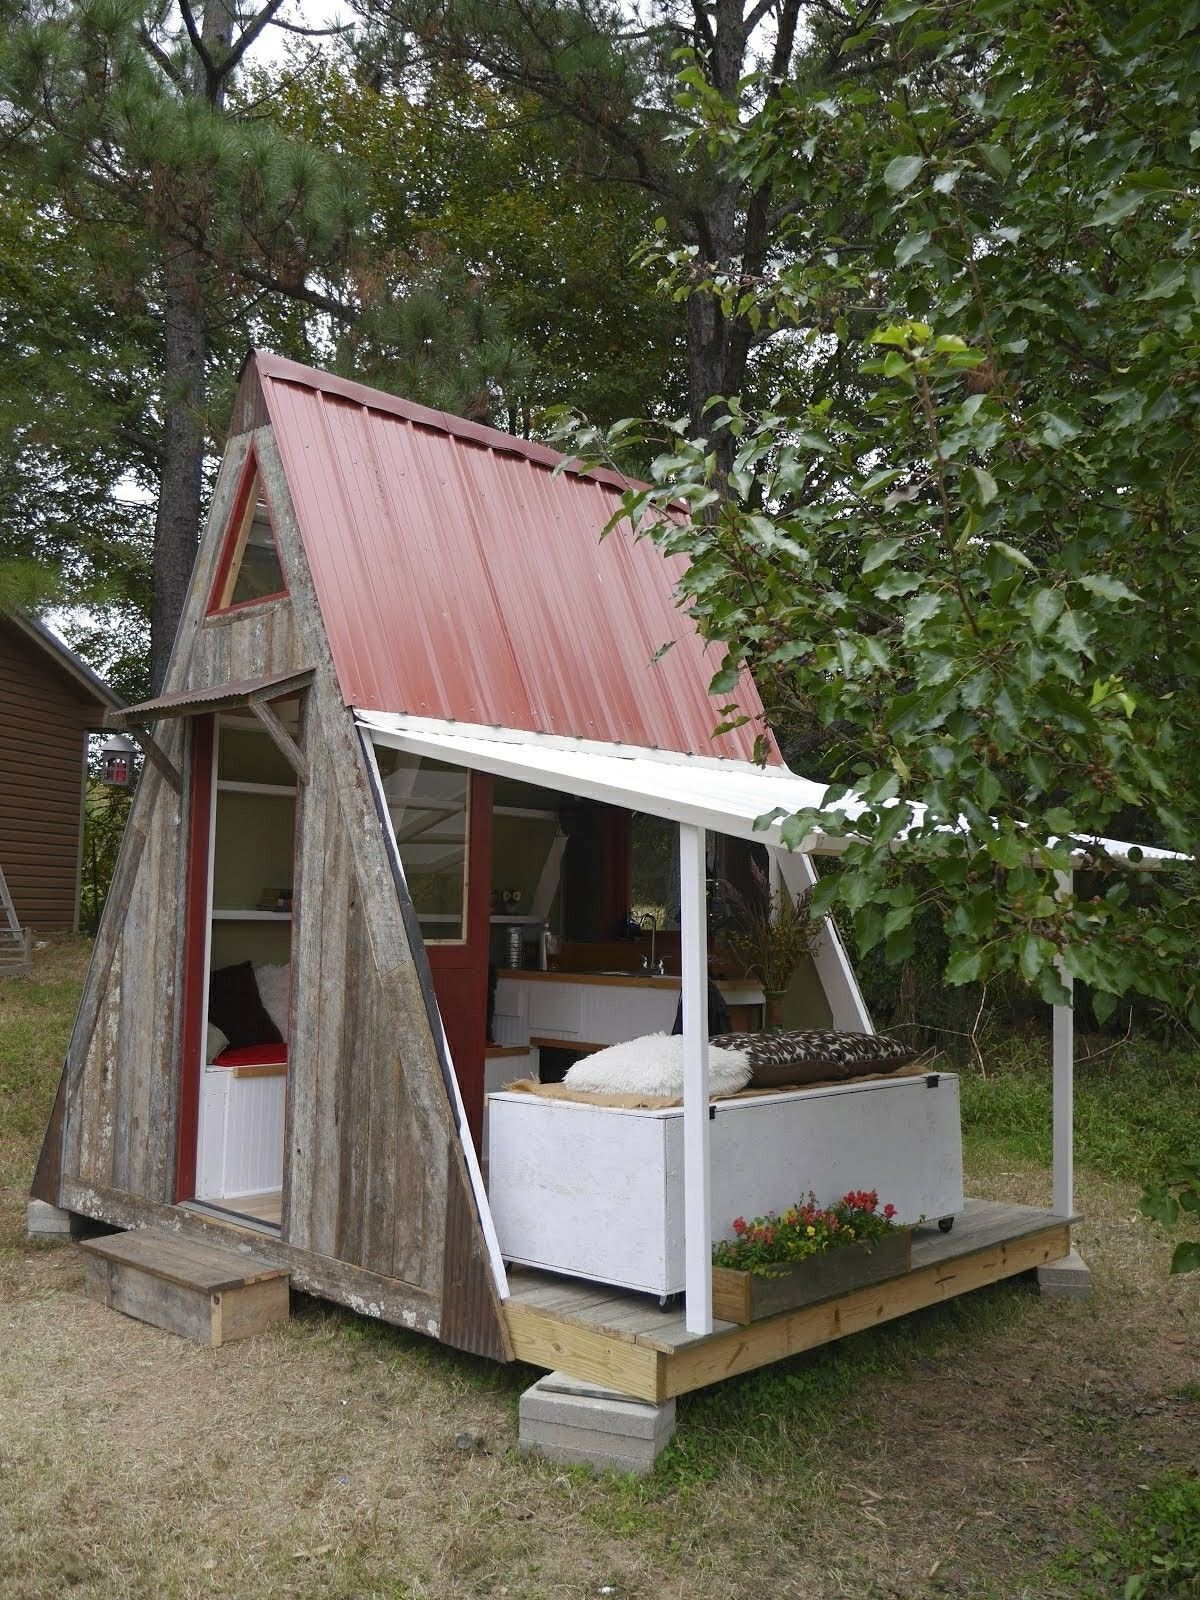 Pin By Harrach Glass On Tiny, Small, Little Homes And